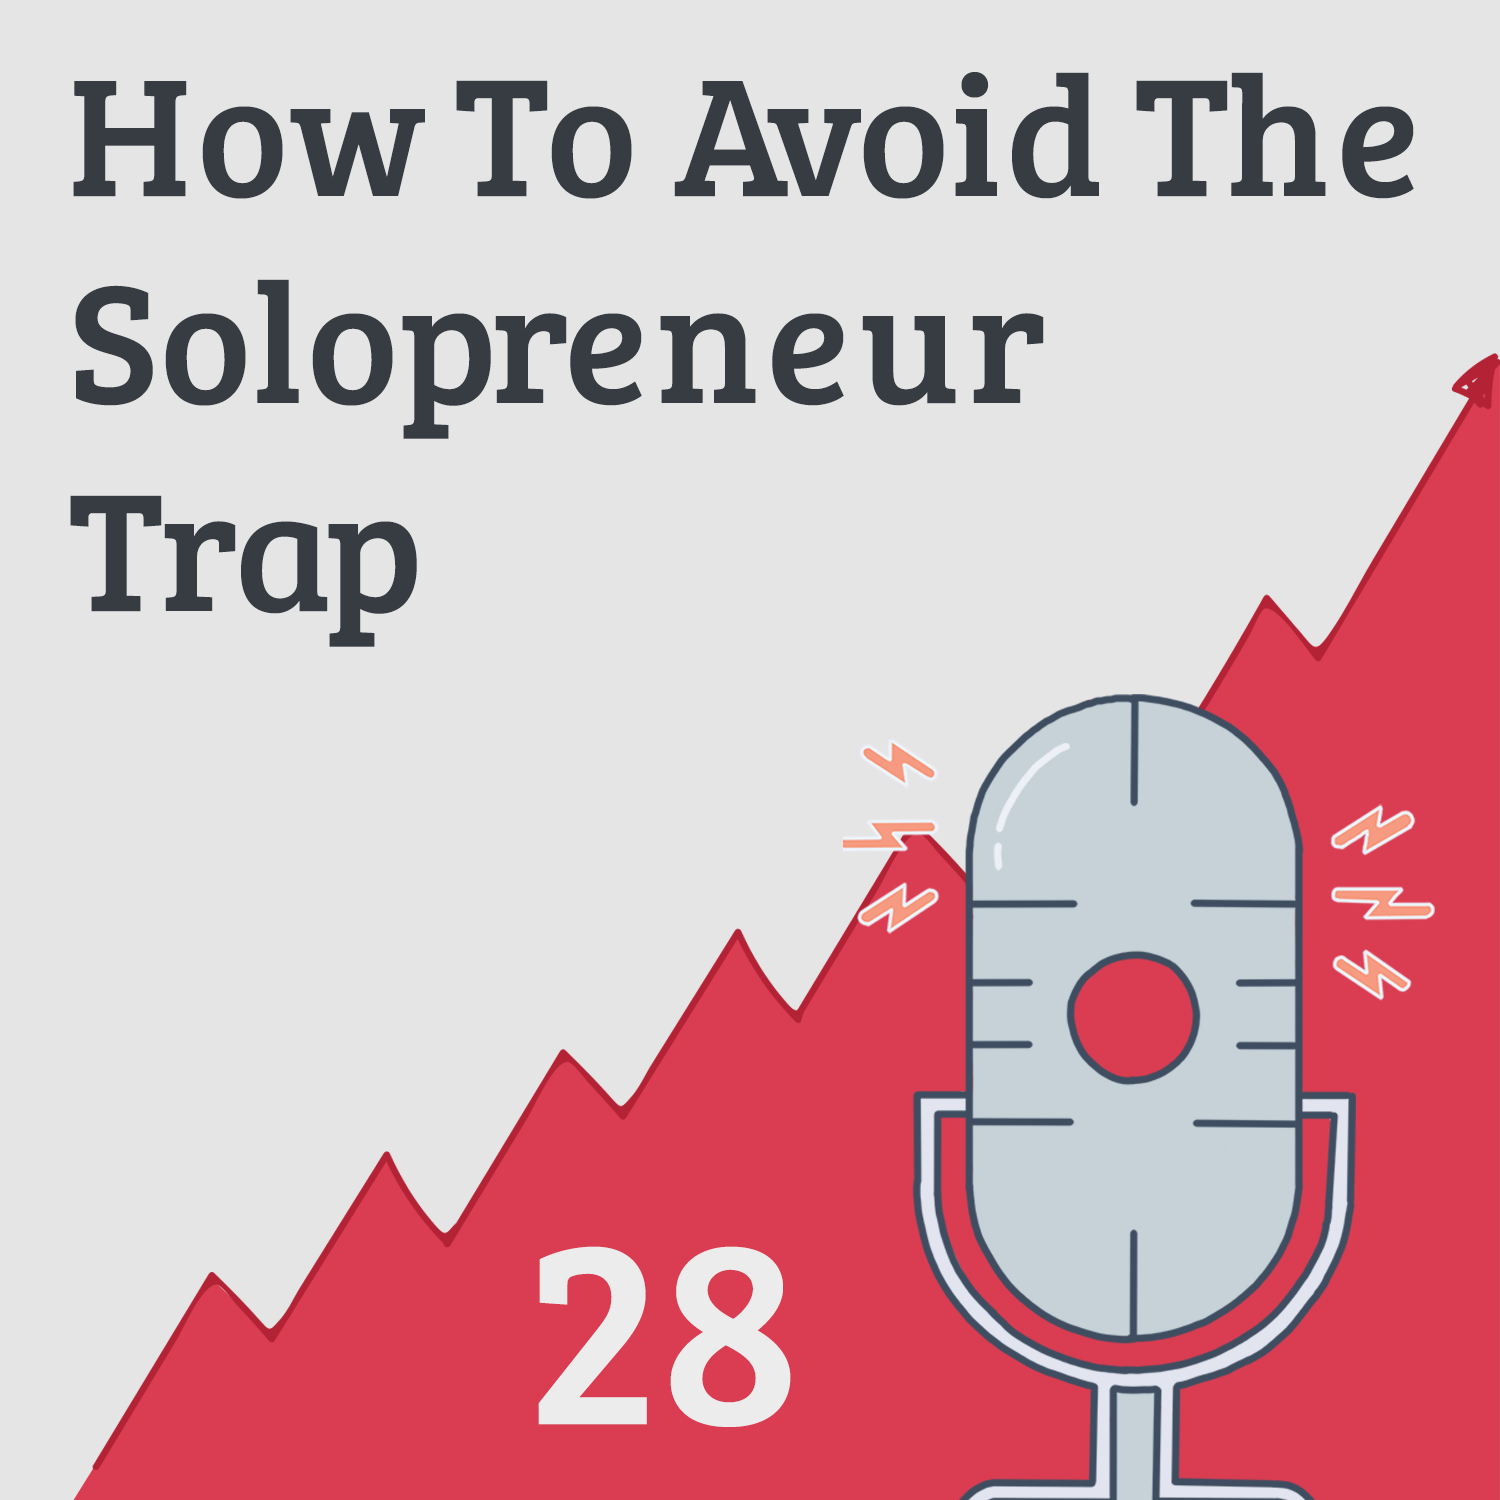 The Solopreneur Episode: What to Stop, Change and Start Doing to Make Progress